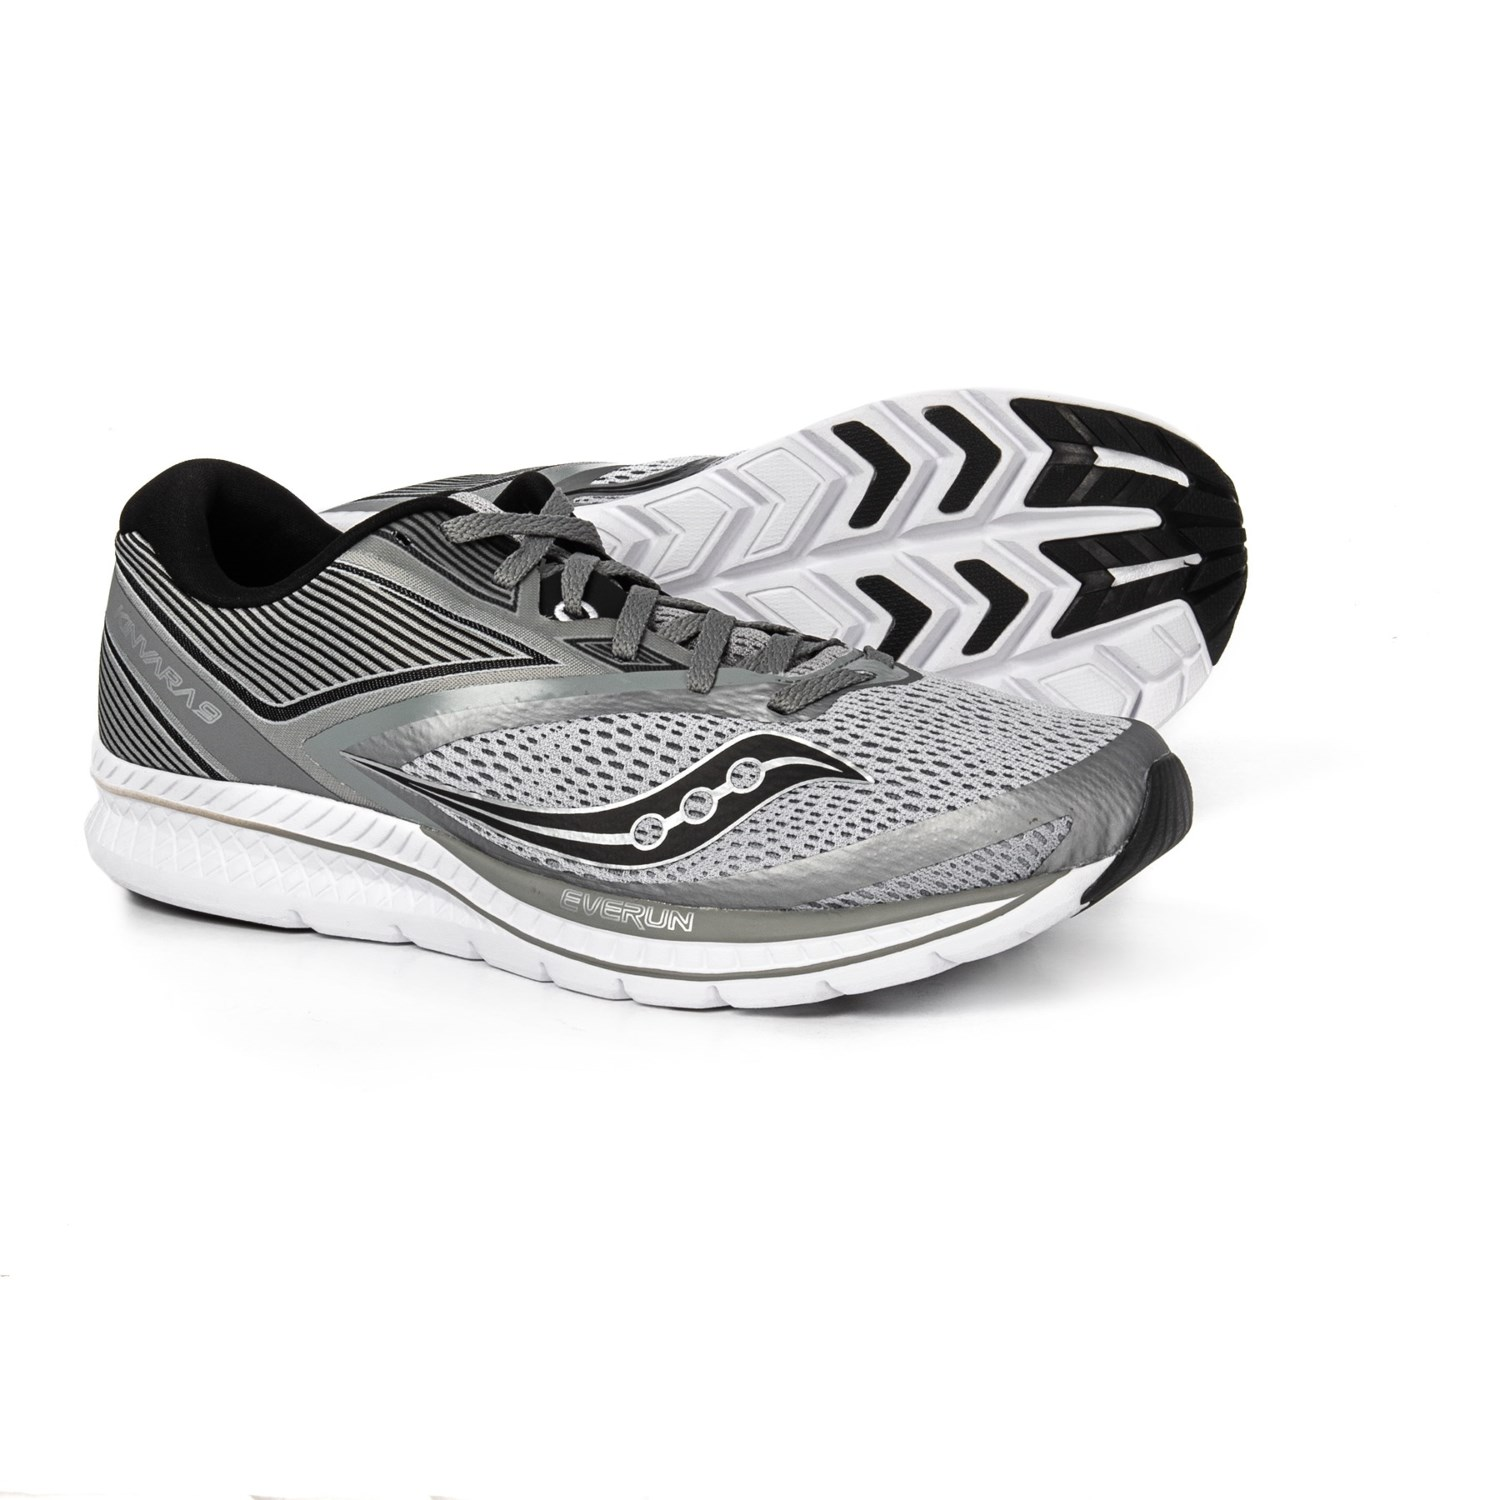 976547f8adad Saucony Kinvara 9 Running Shoes (For Men) in Grey Black